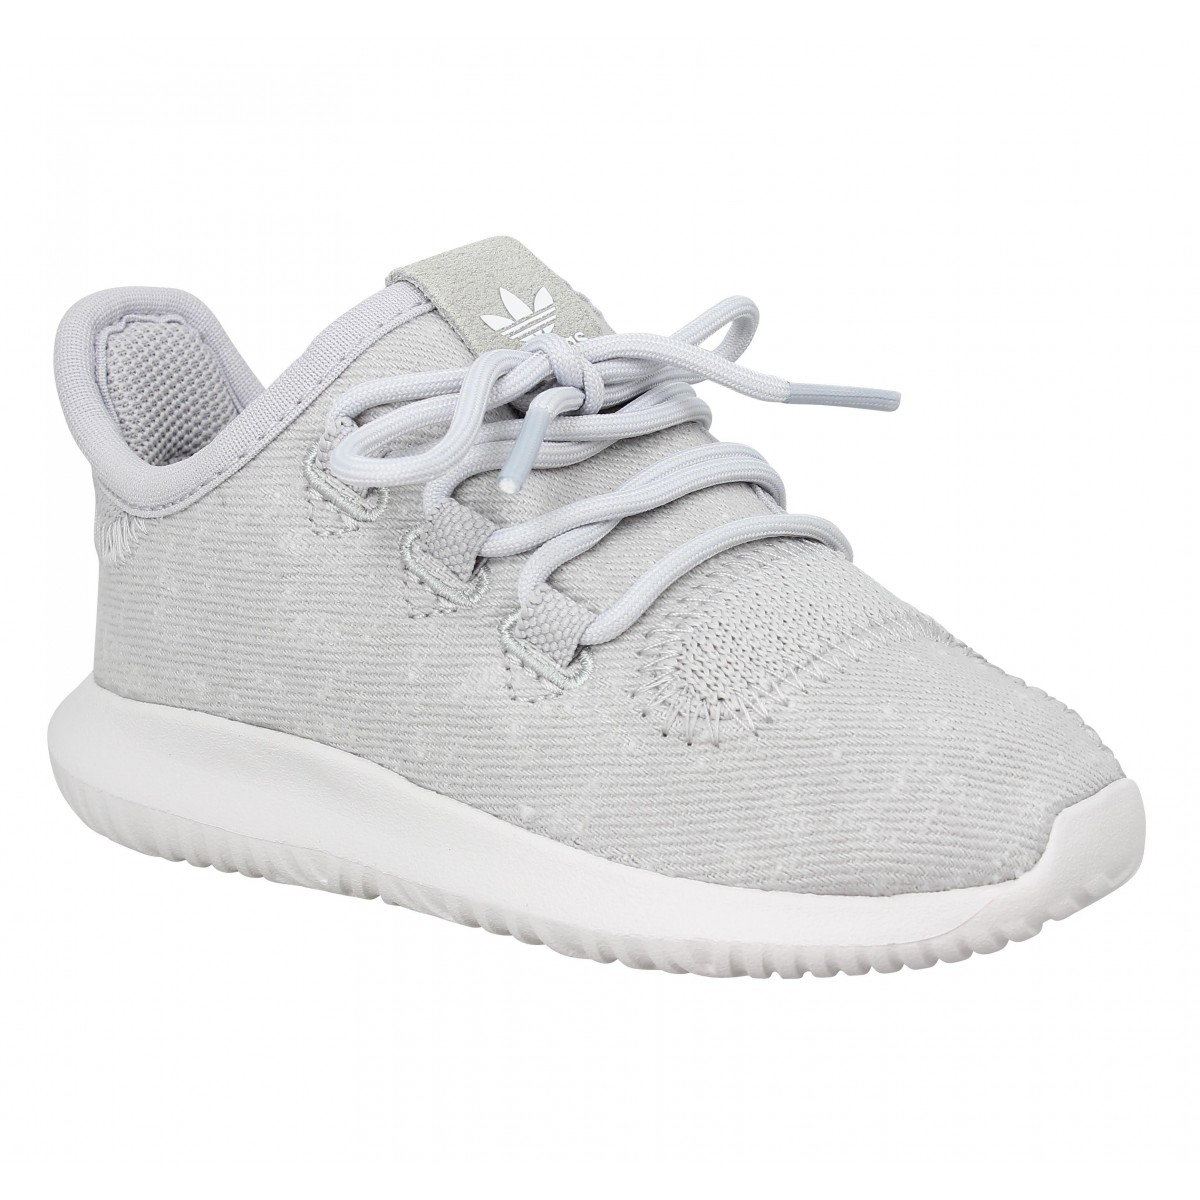 Baskets ADIDAS Tubular Shadow toile Enfant Gris